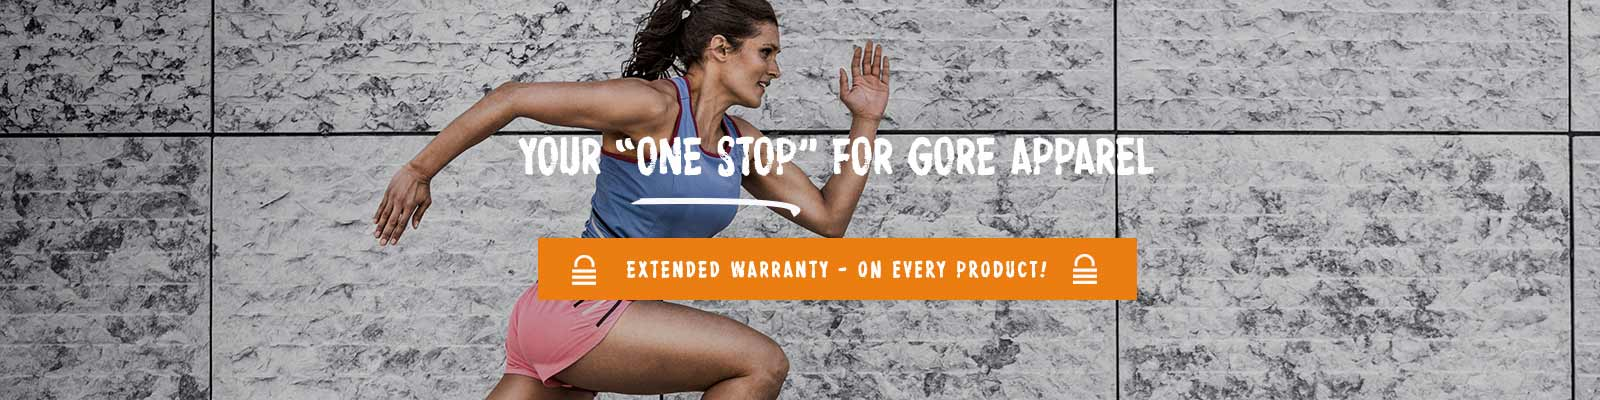 Urban clothing from Gore Running Wear is available at TG Store